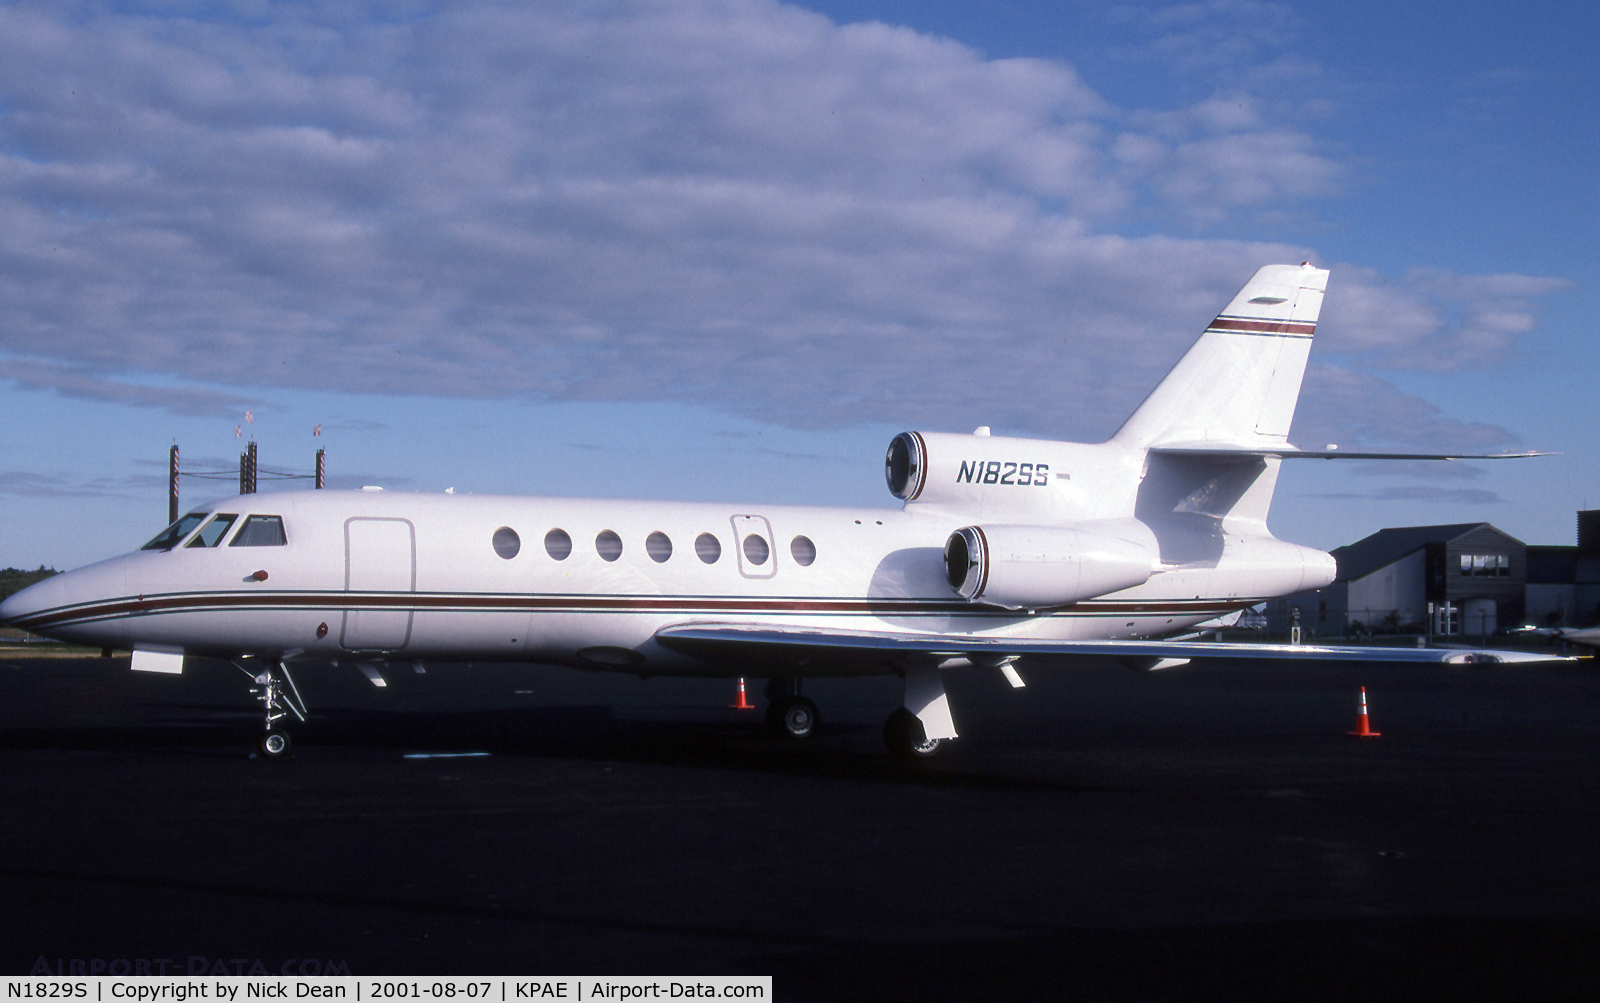 N1829S, 1999 Dassault Falcon 50EX C/N 280, The Stevens Group were regular visitors to KPAE a few years ago